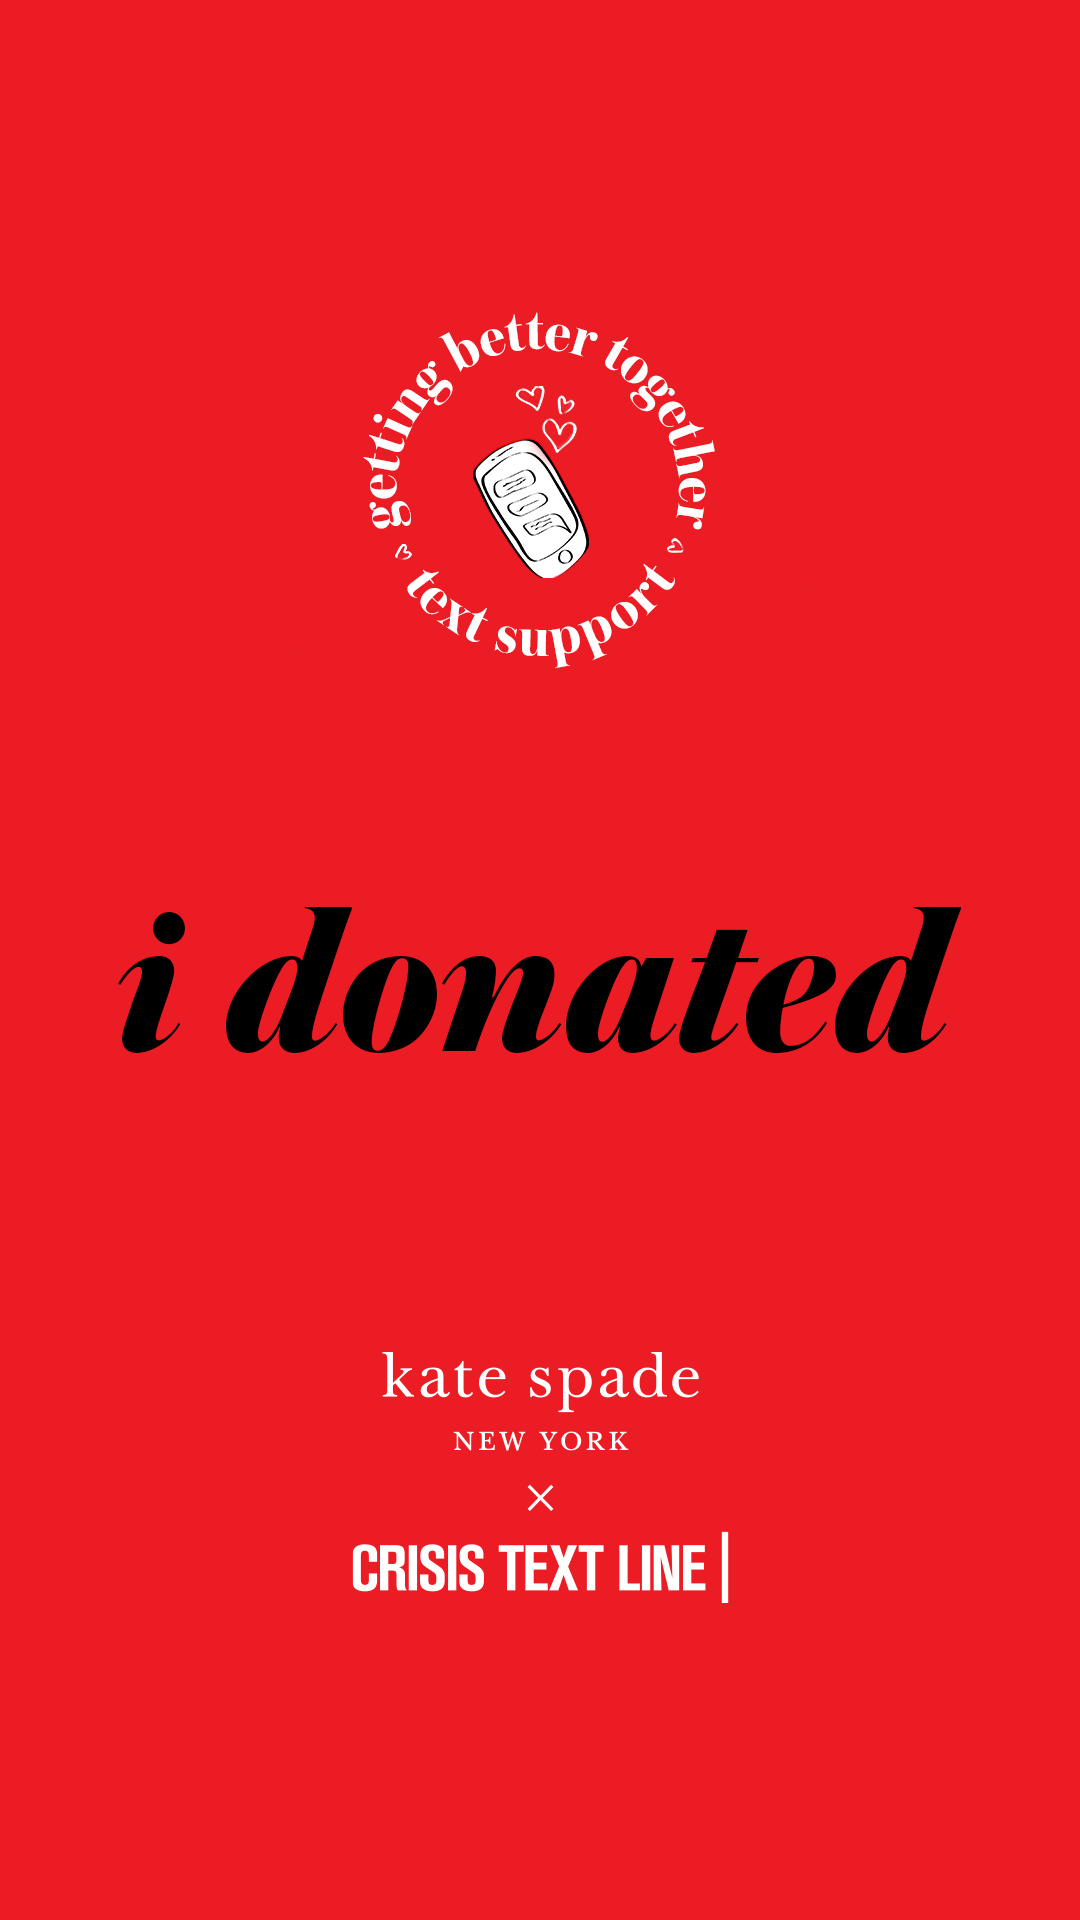 Kate Spade New York Foundation Donates to Crisis Text Line